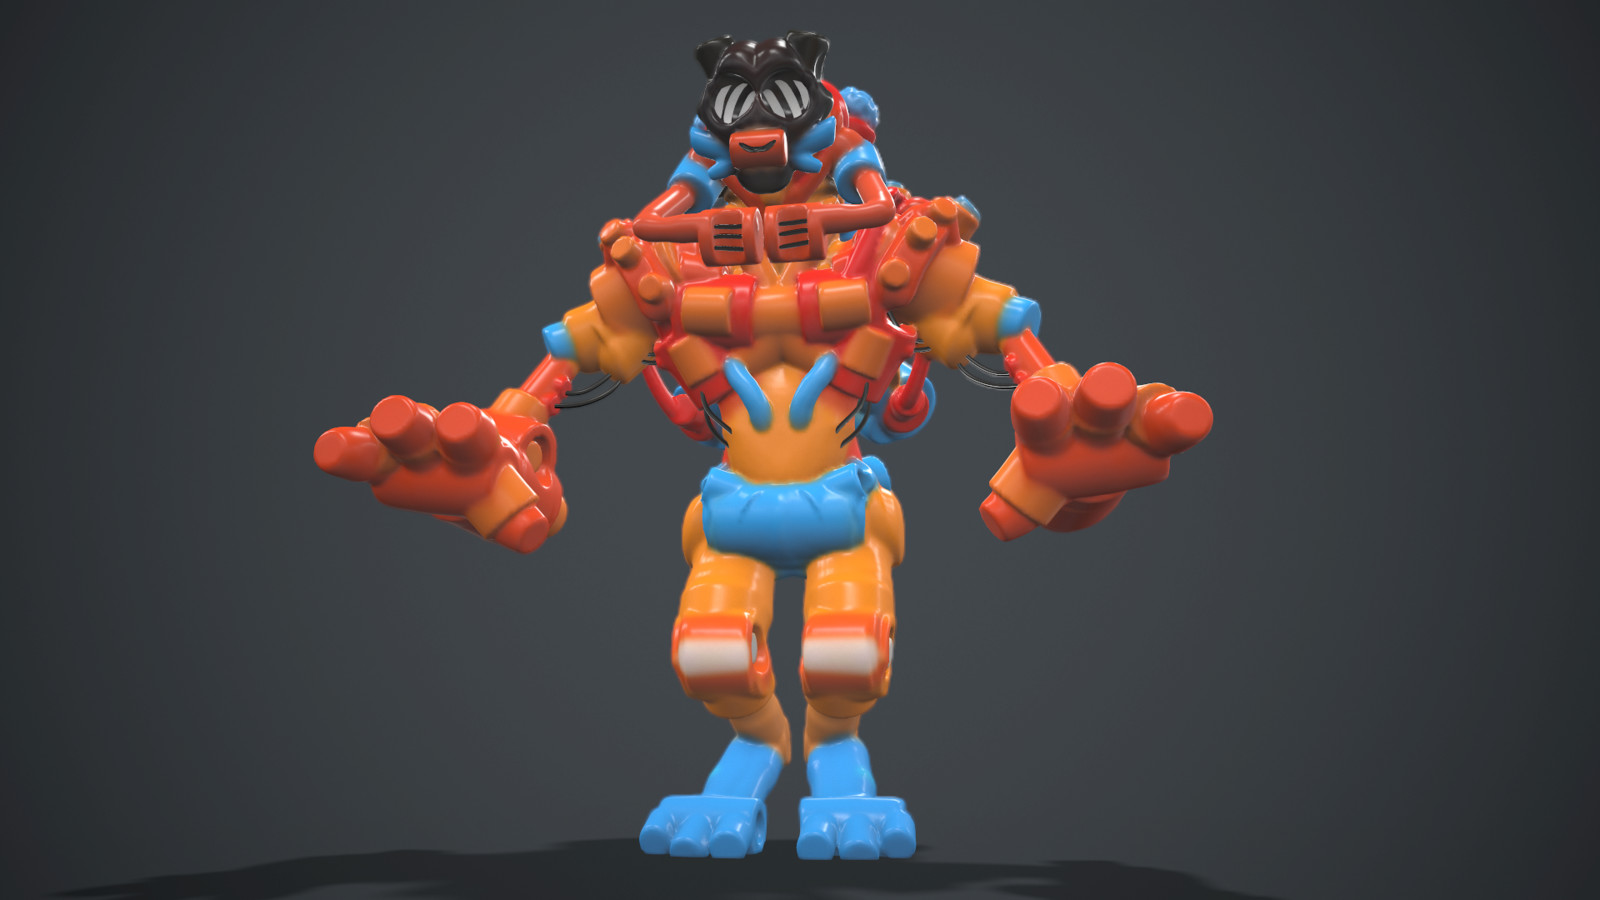 Marmoset render (model exported as an FBX from MasterpieceVR)